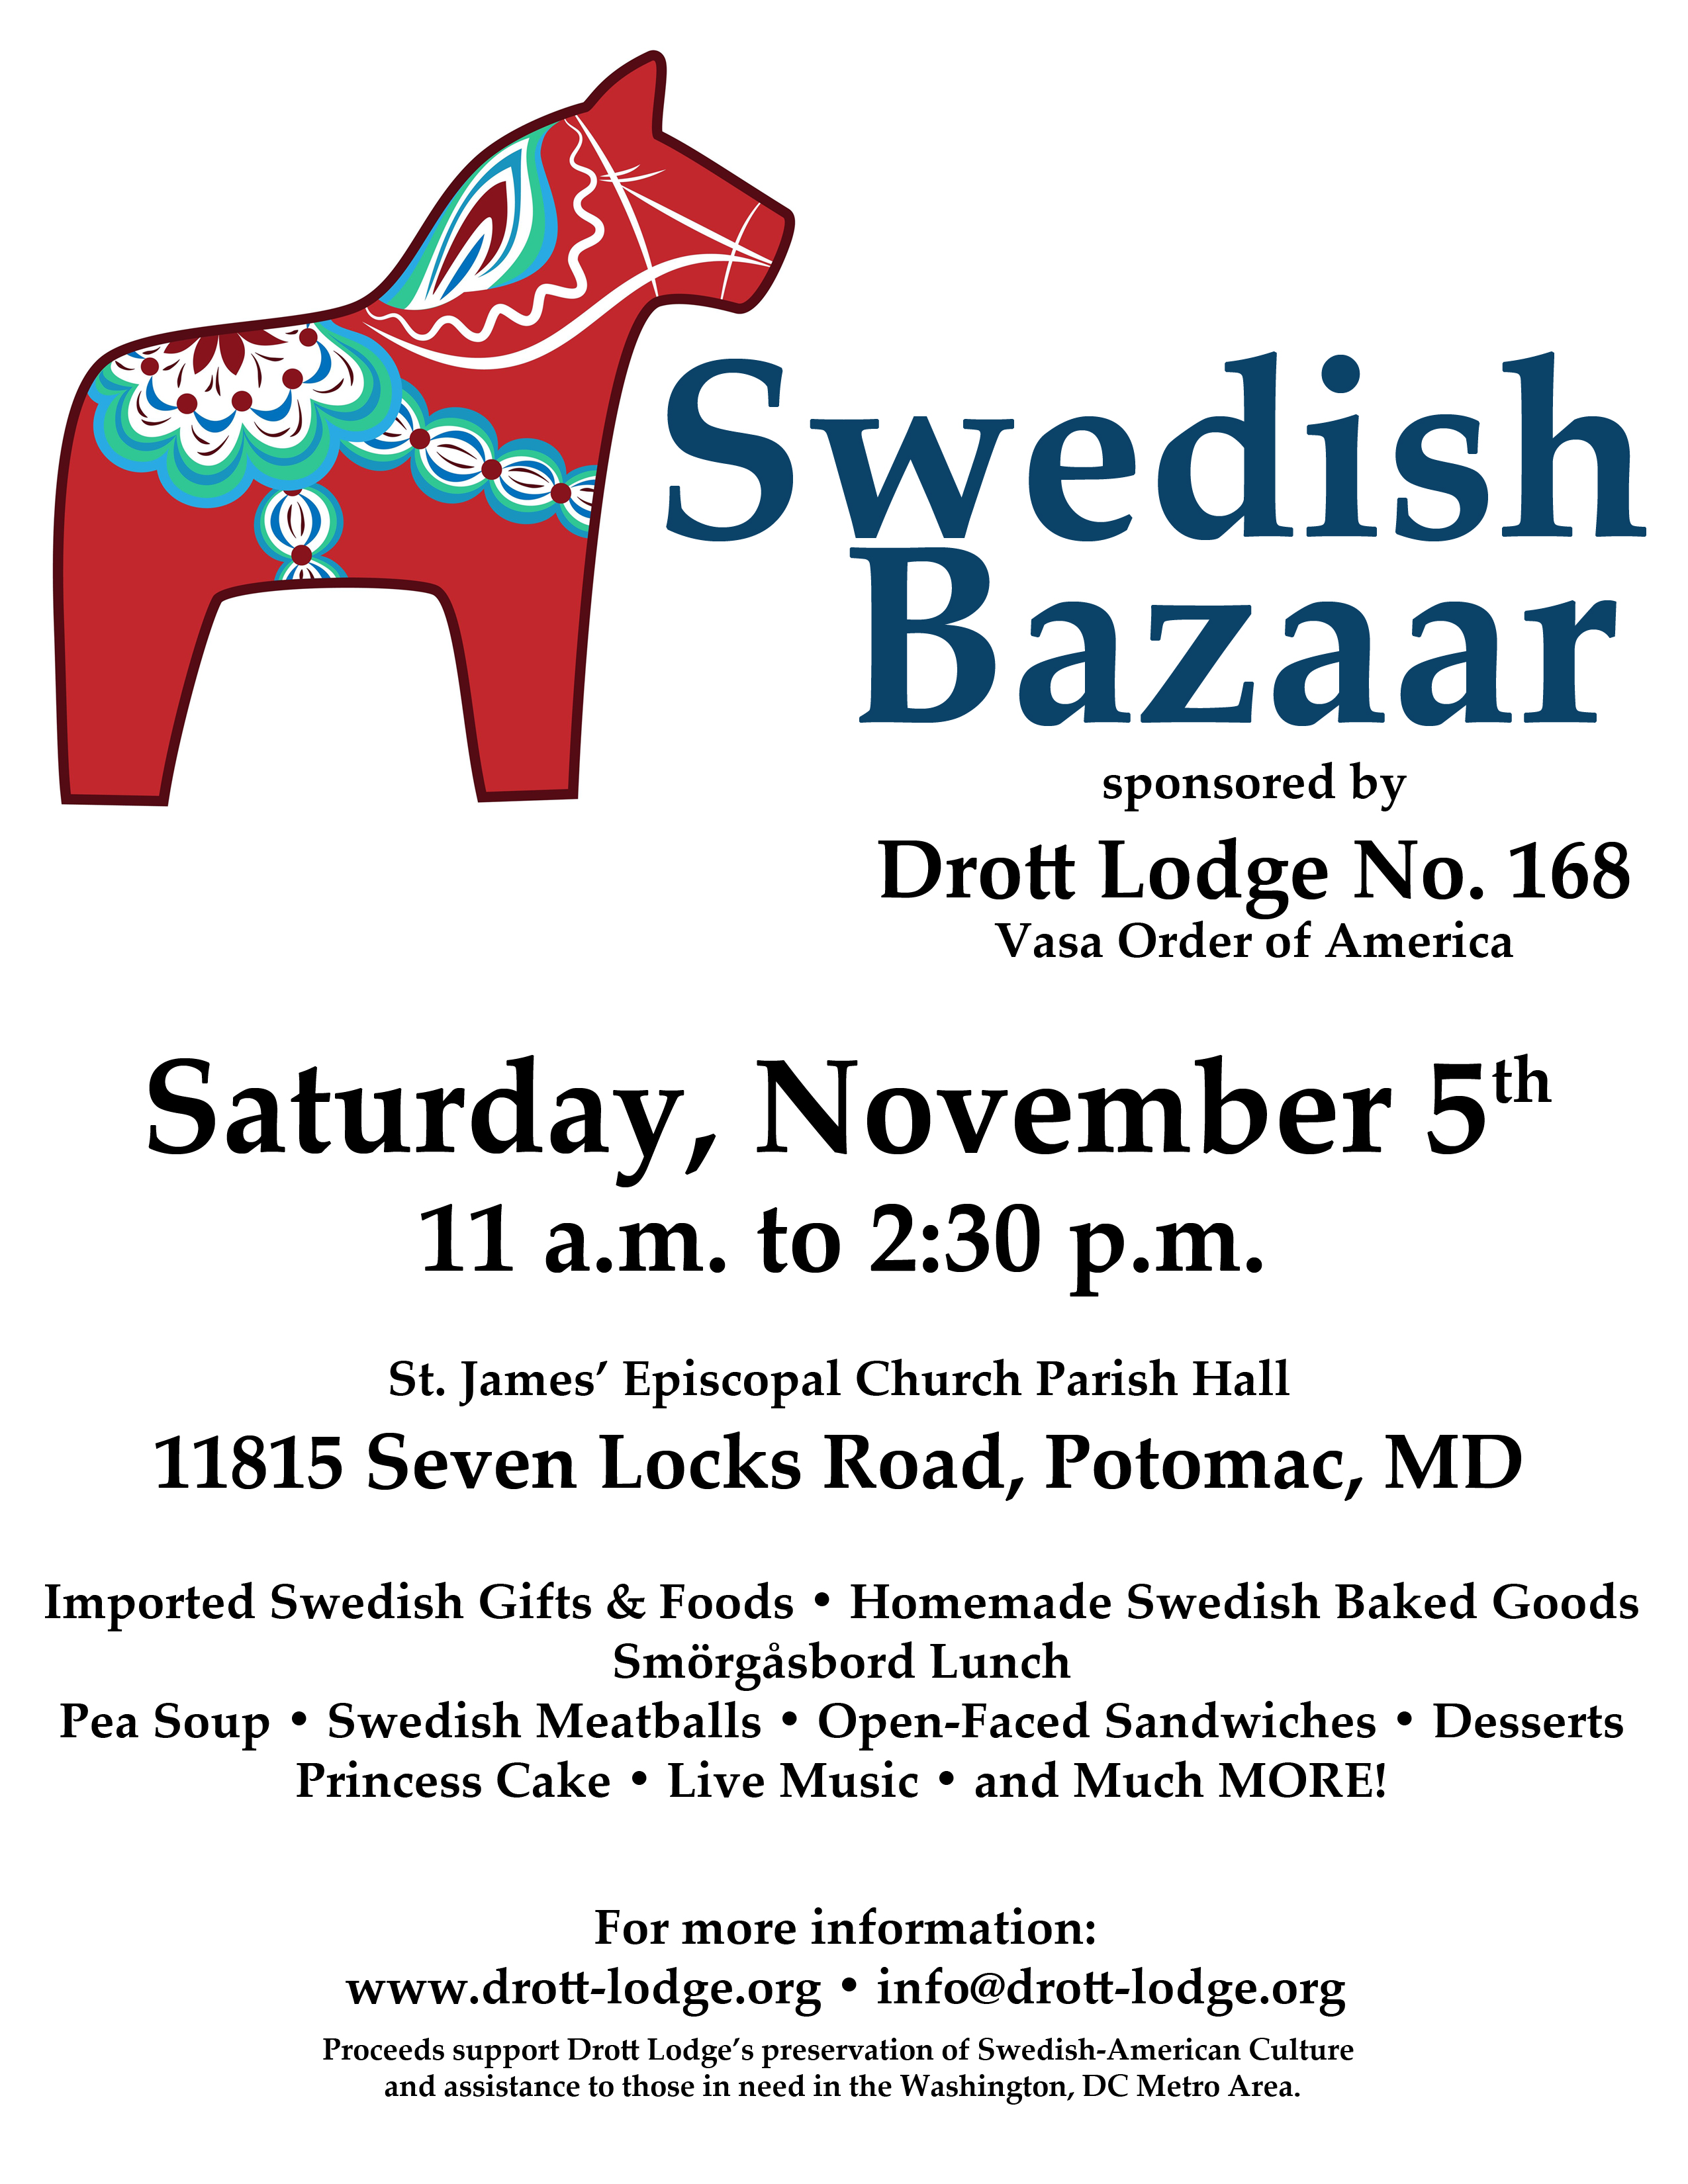 Annual Swedish Bazaar (Volunteers Needed!) @ St James' Episcopal Church Parish Hall | Potomac | Maryland | United States